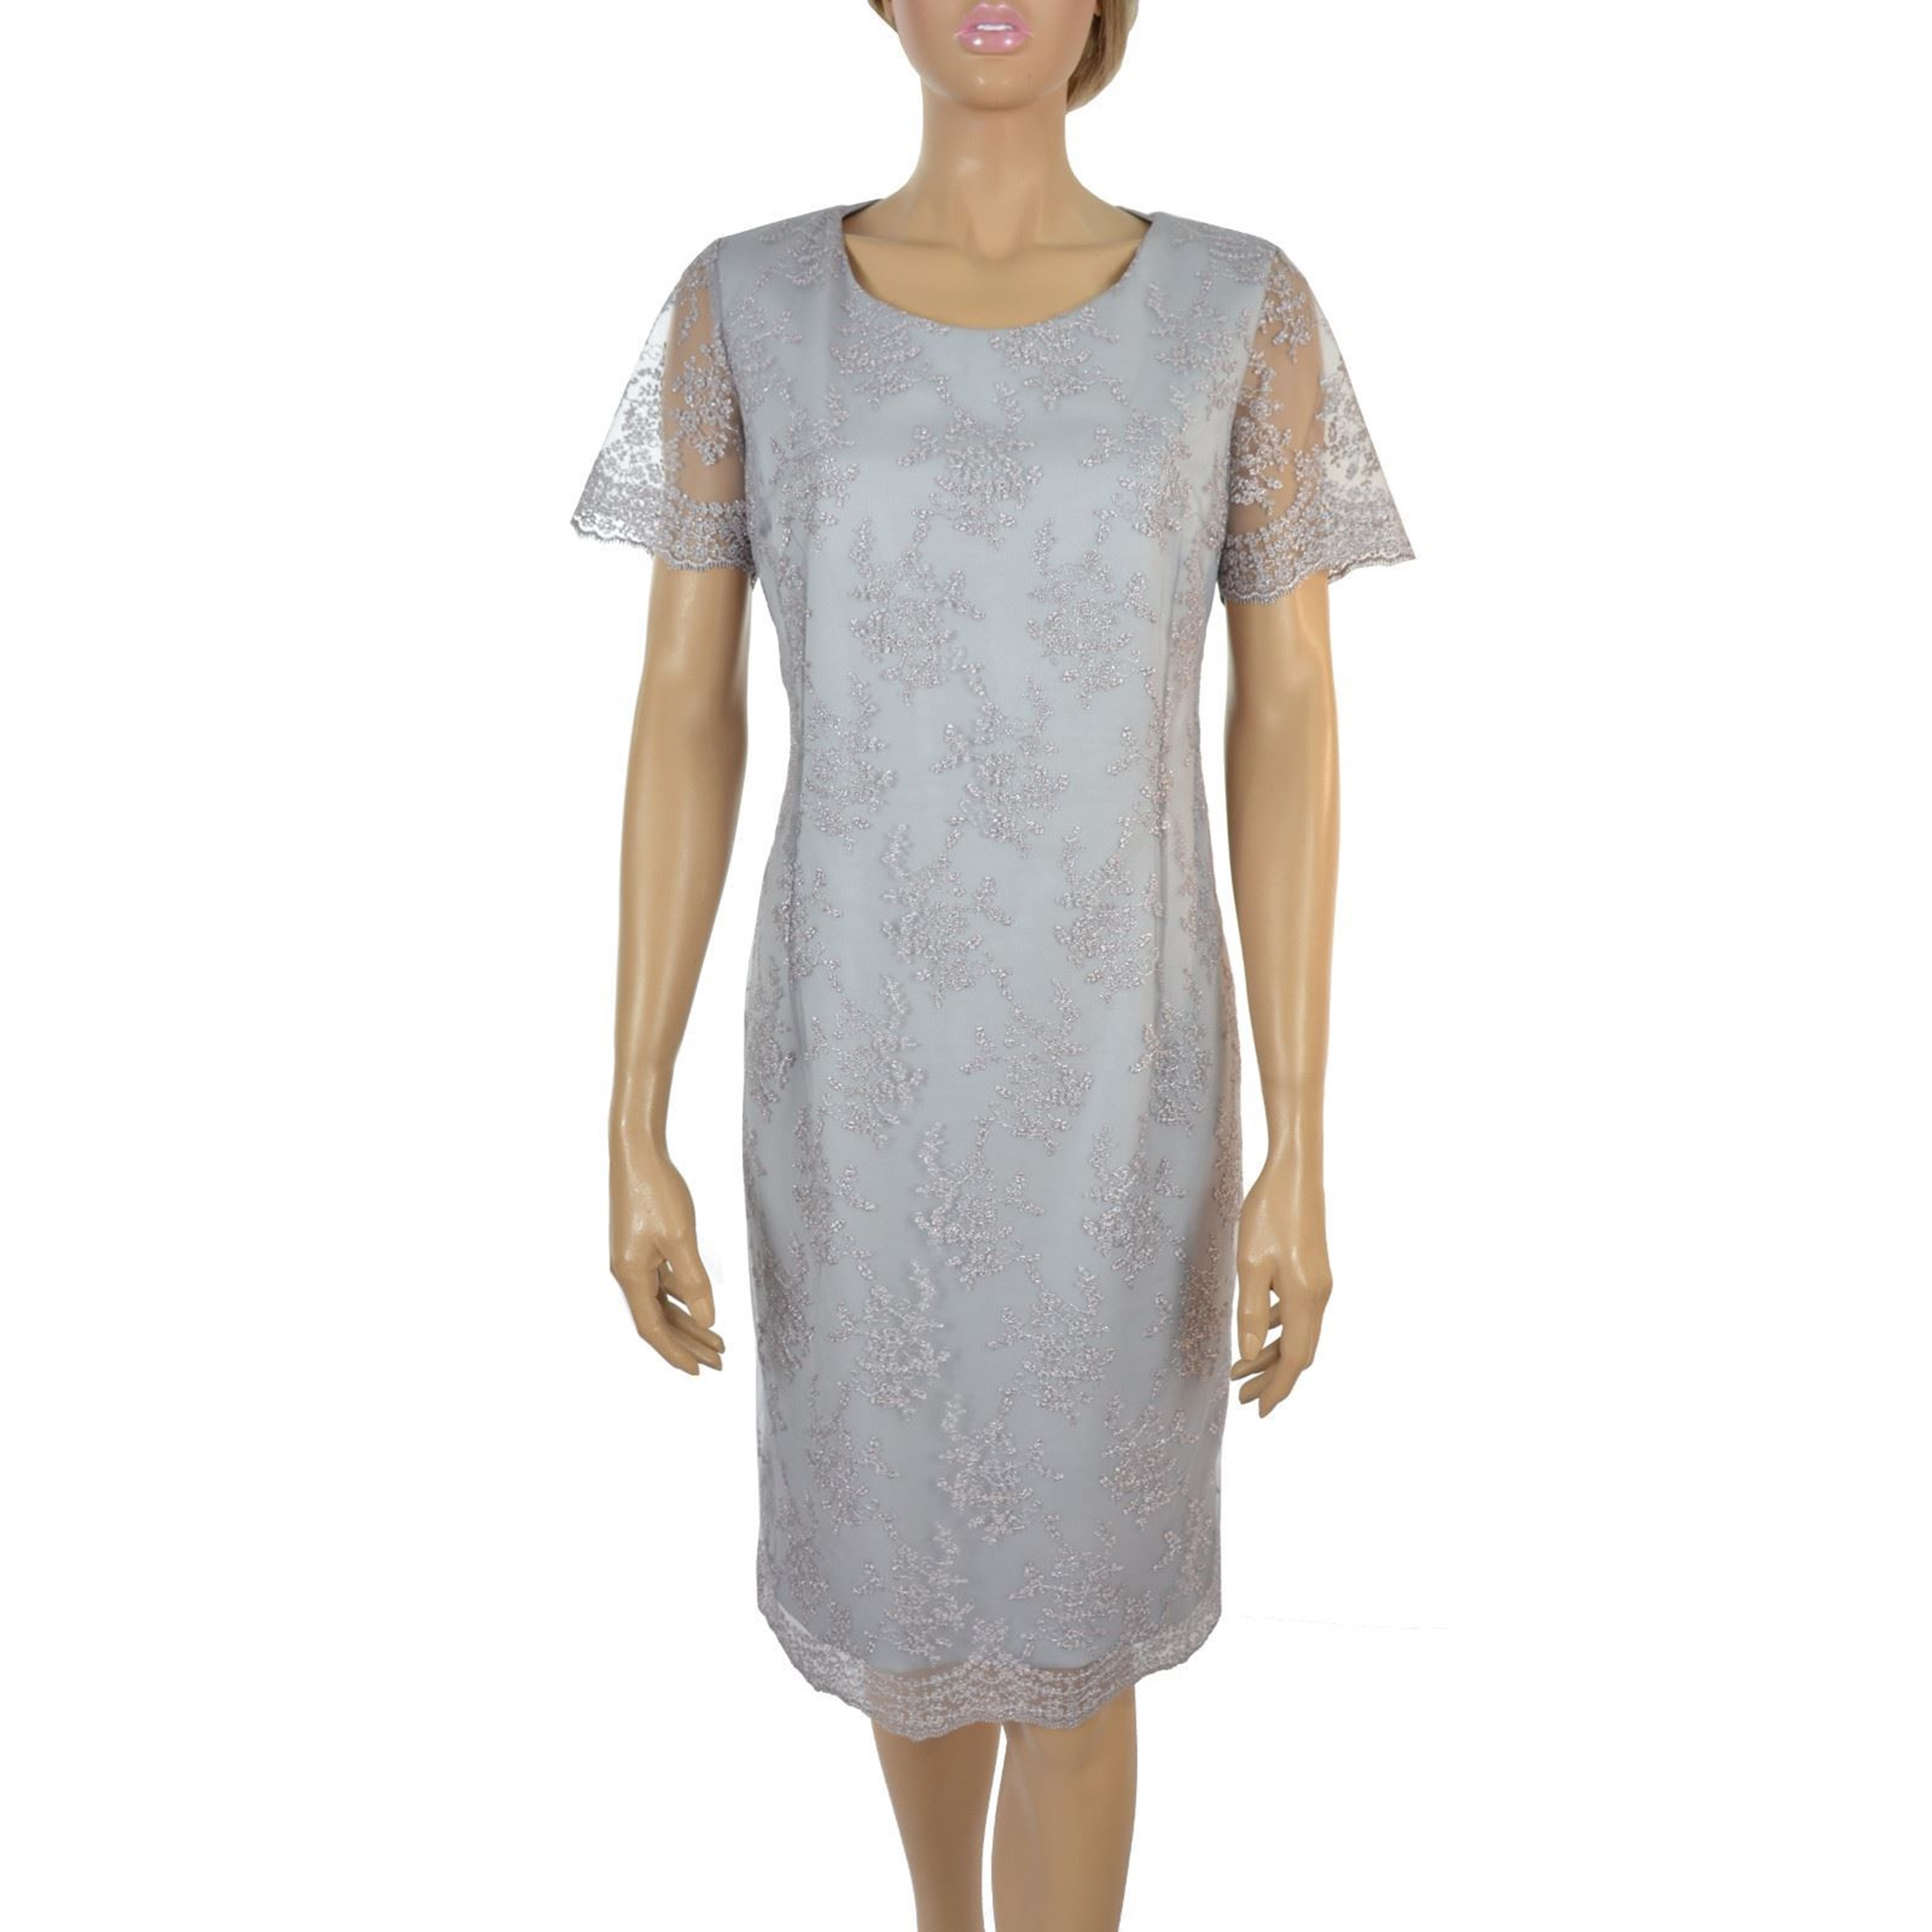 Picture of Women's Dress - LM451395 GREY